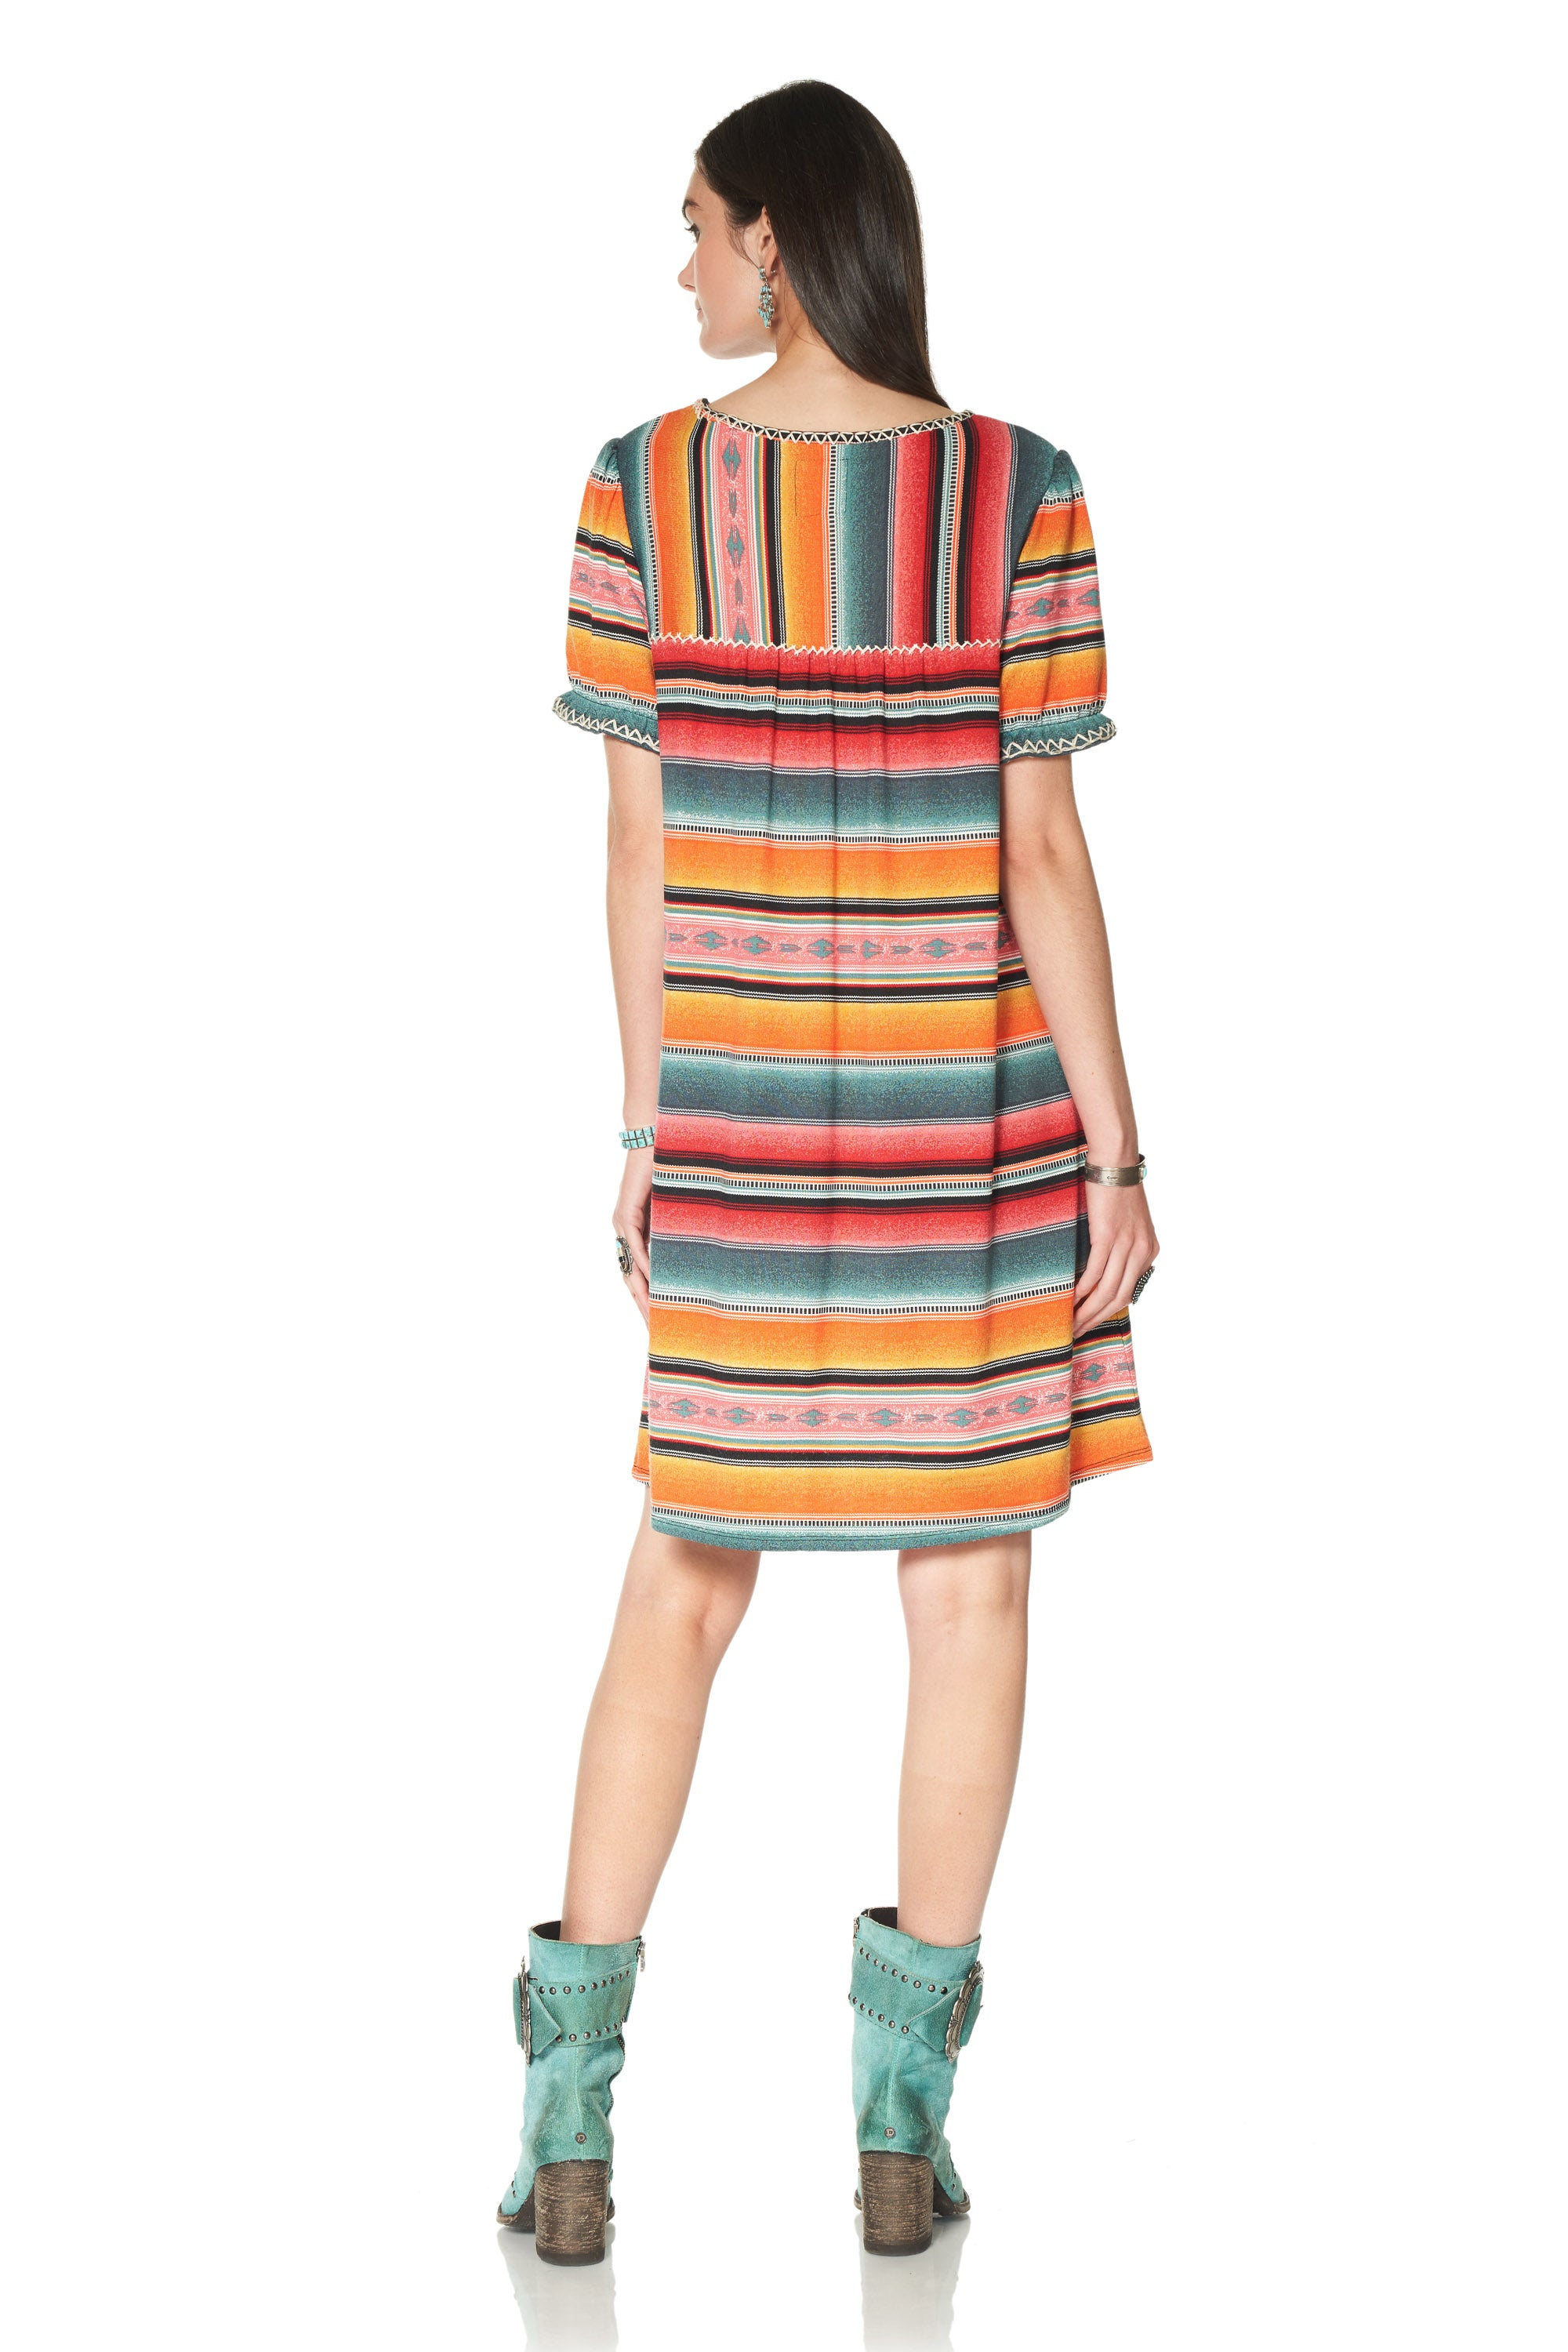 Cynthia's Serape Dress